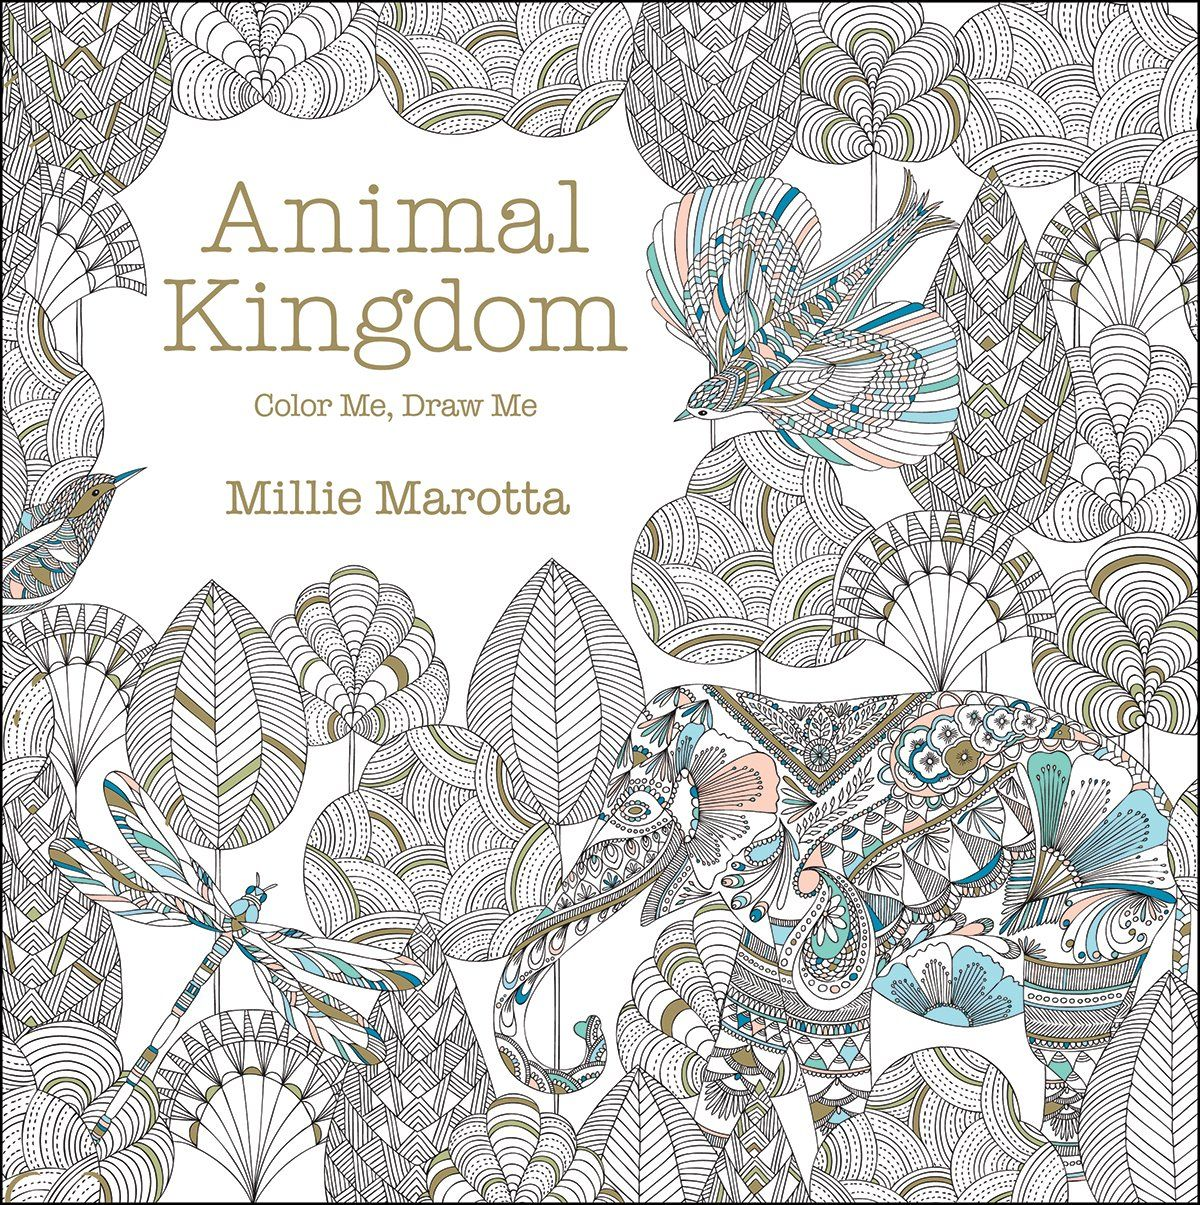 Color book for me - Animal Kingdom Color Me Draw Me A Millie Marotta Adult Coloring Book